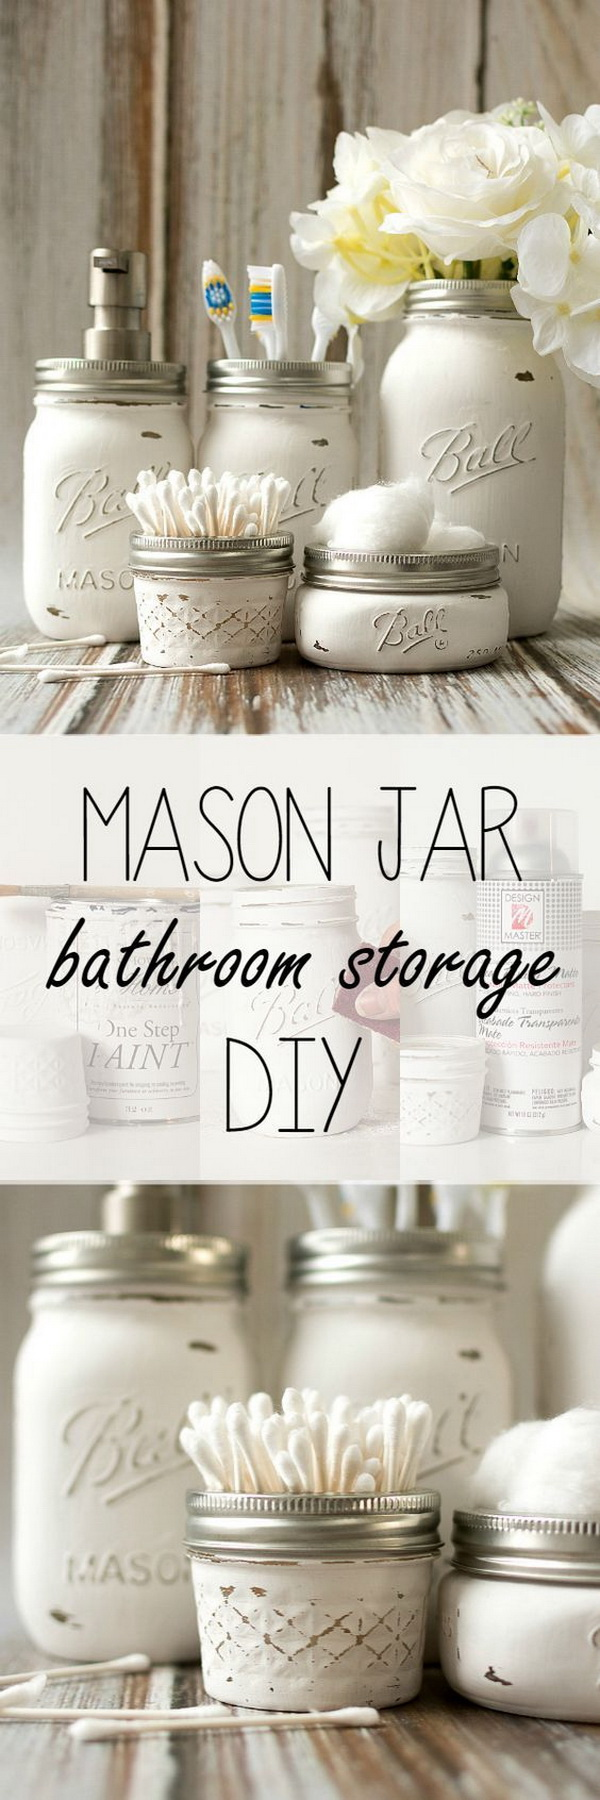 Mason Jar Bathroom Storage.